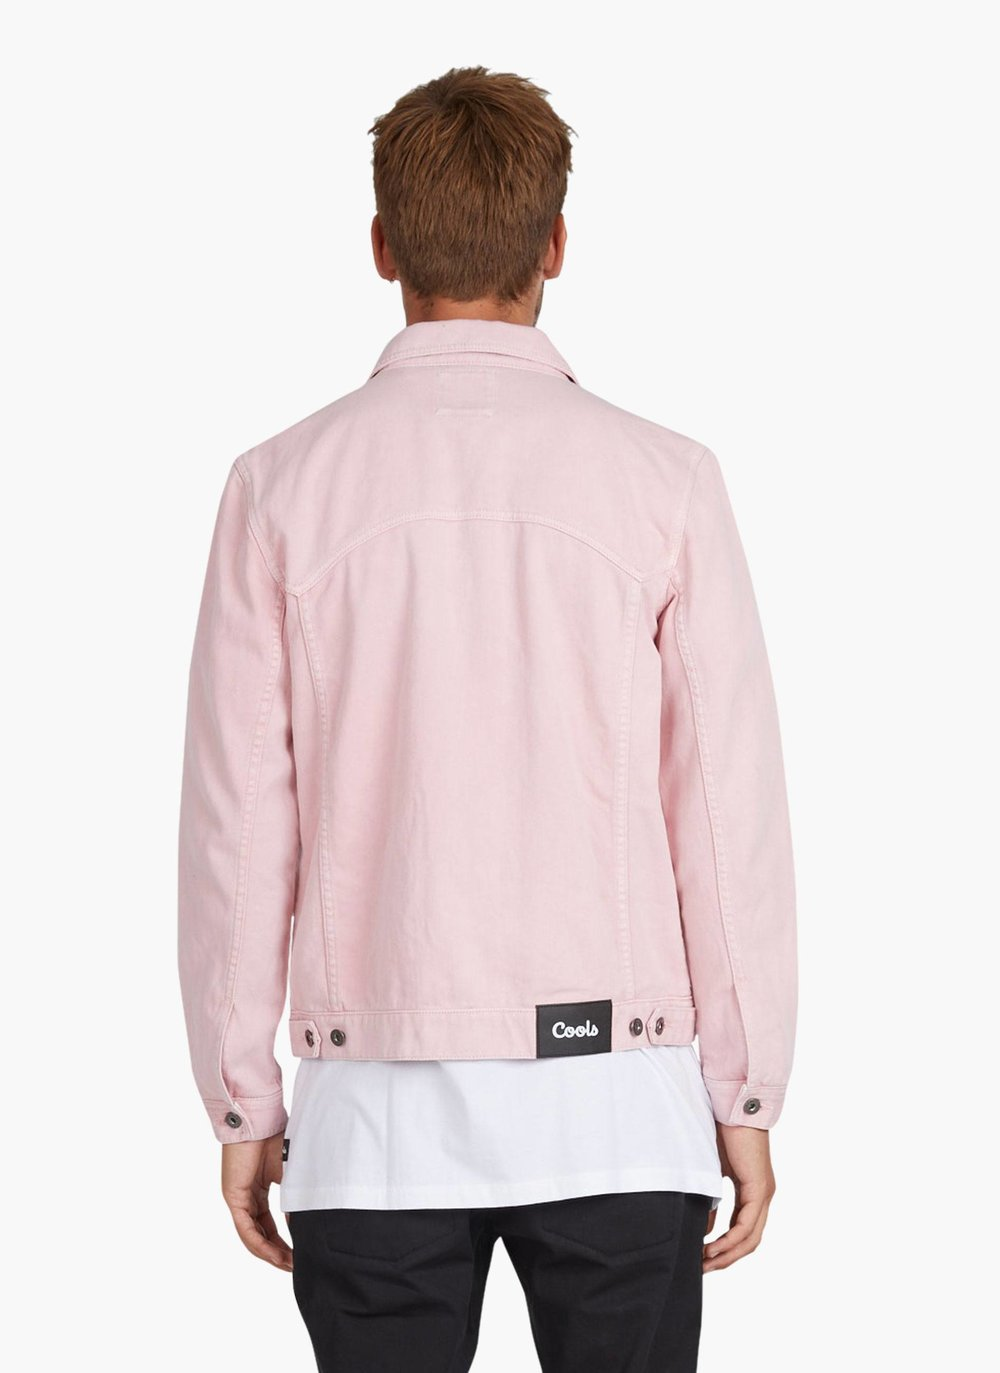 BARNEY-COOLS-B.Rigid-Jacket-Pink-04.jpg